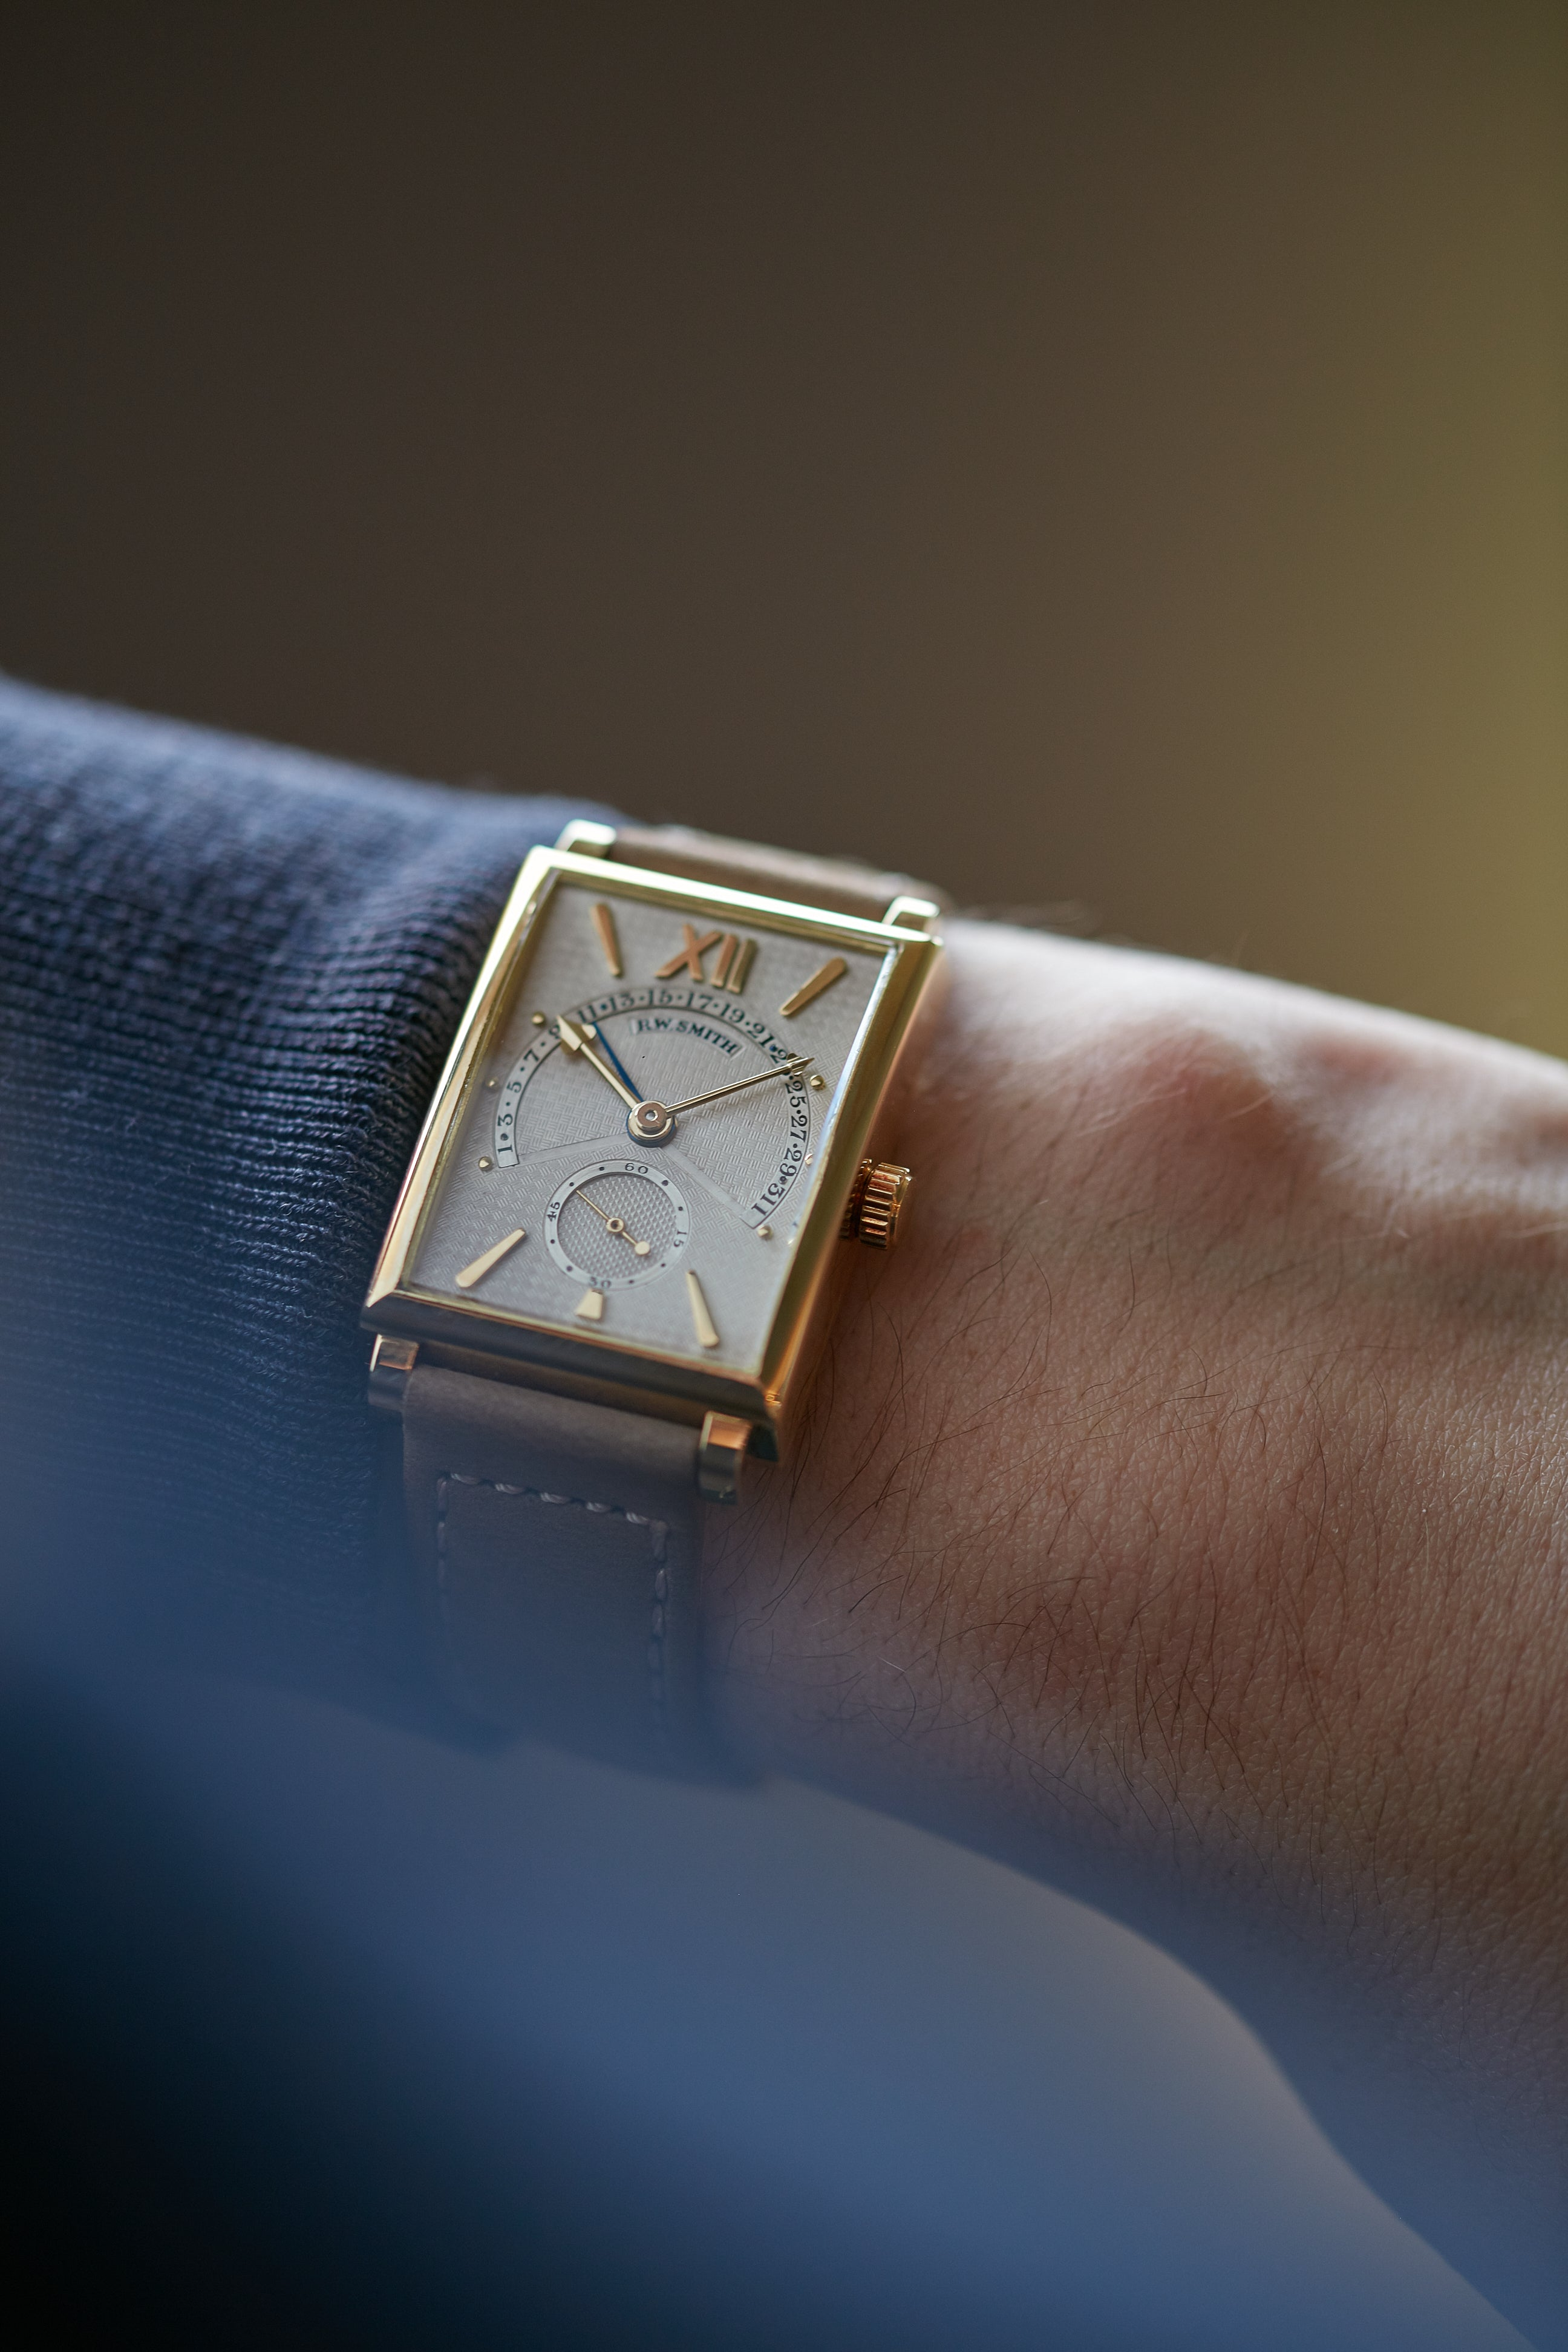 Roger W. Smith Square Series 1 wristwatch on the wrist for A Collected Man London